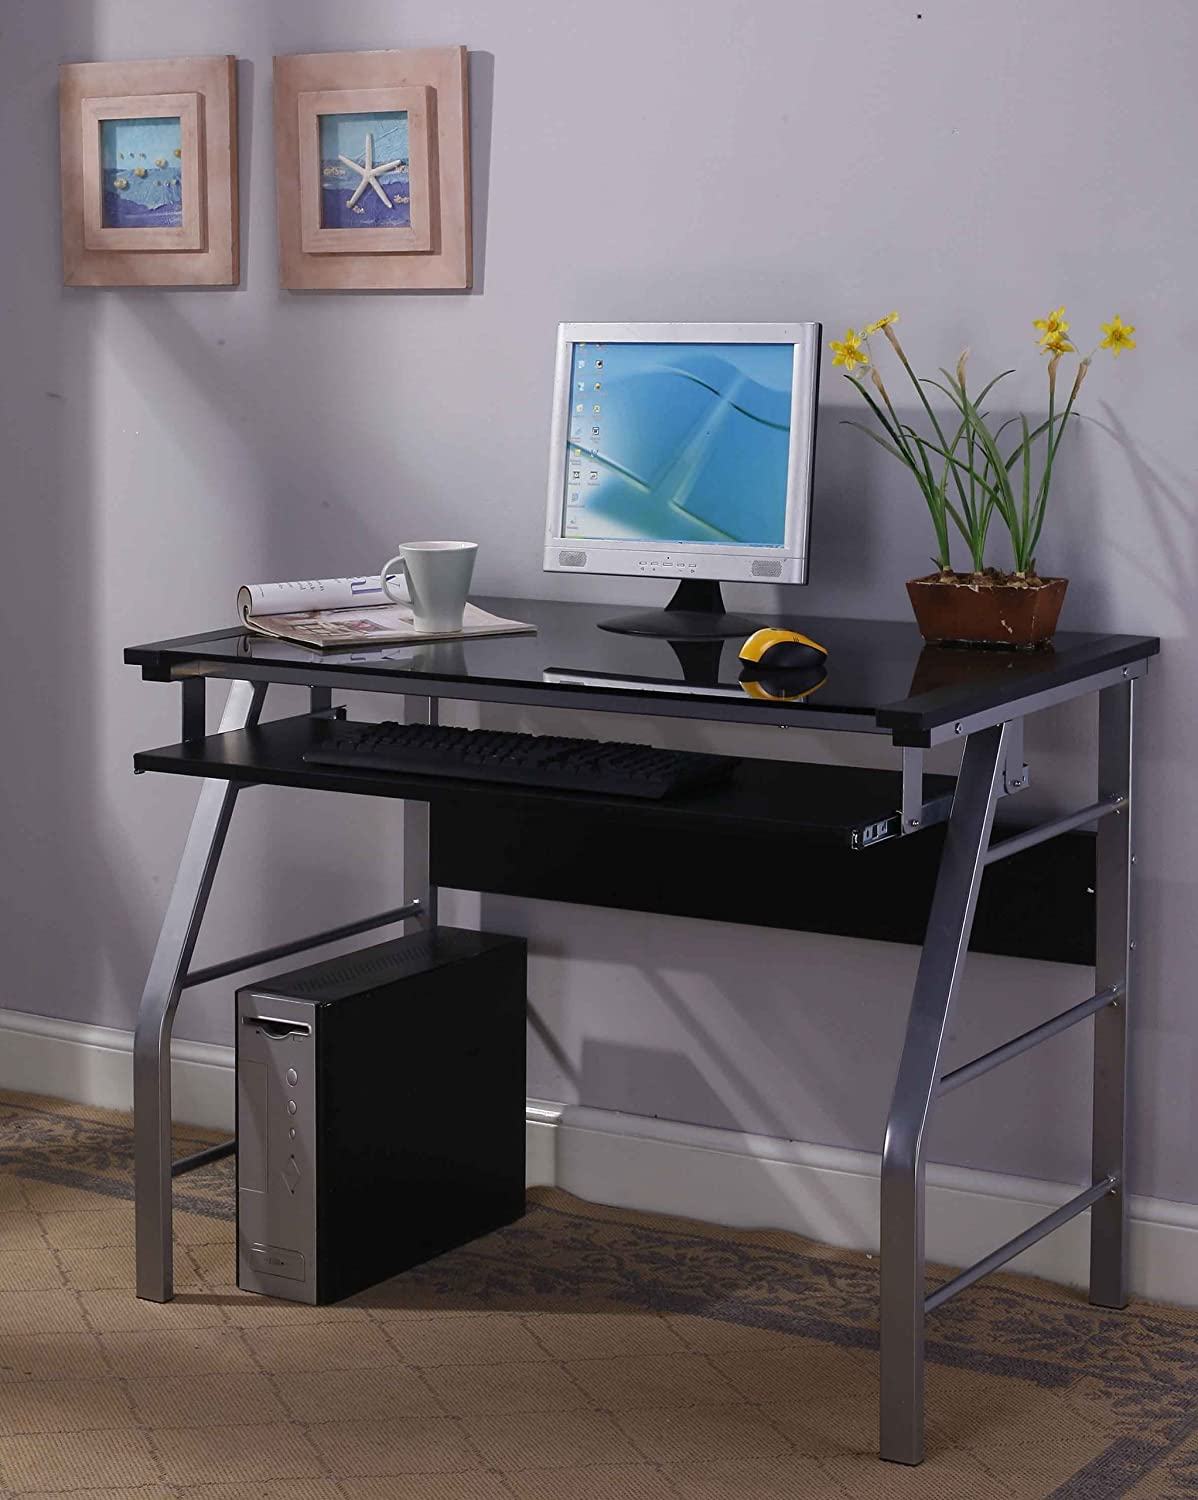 Amazon.com: Kingu0027s Brand 2950 Glass And Metal Home Office Computer  Workstation Desk/Table, Silver Finish: Kitchen U0026 Dining